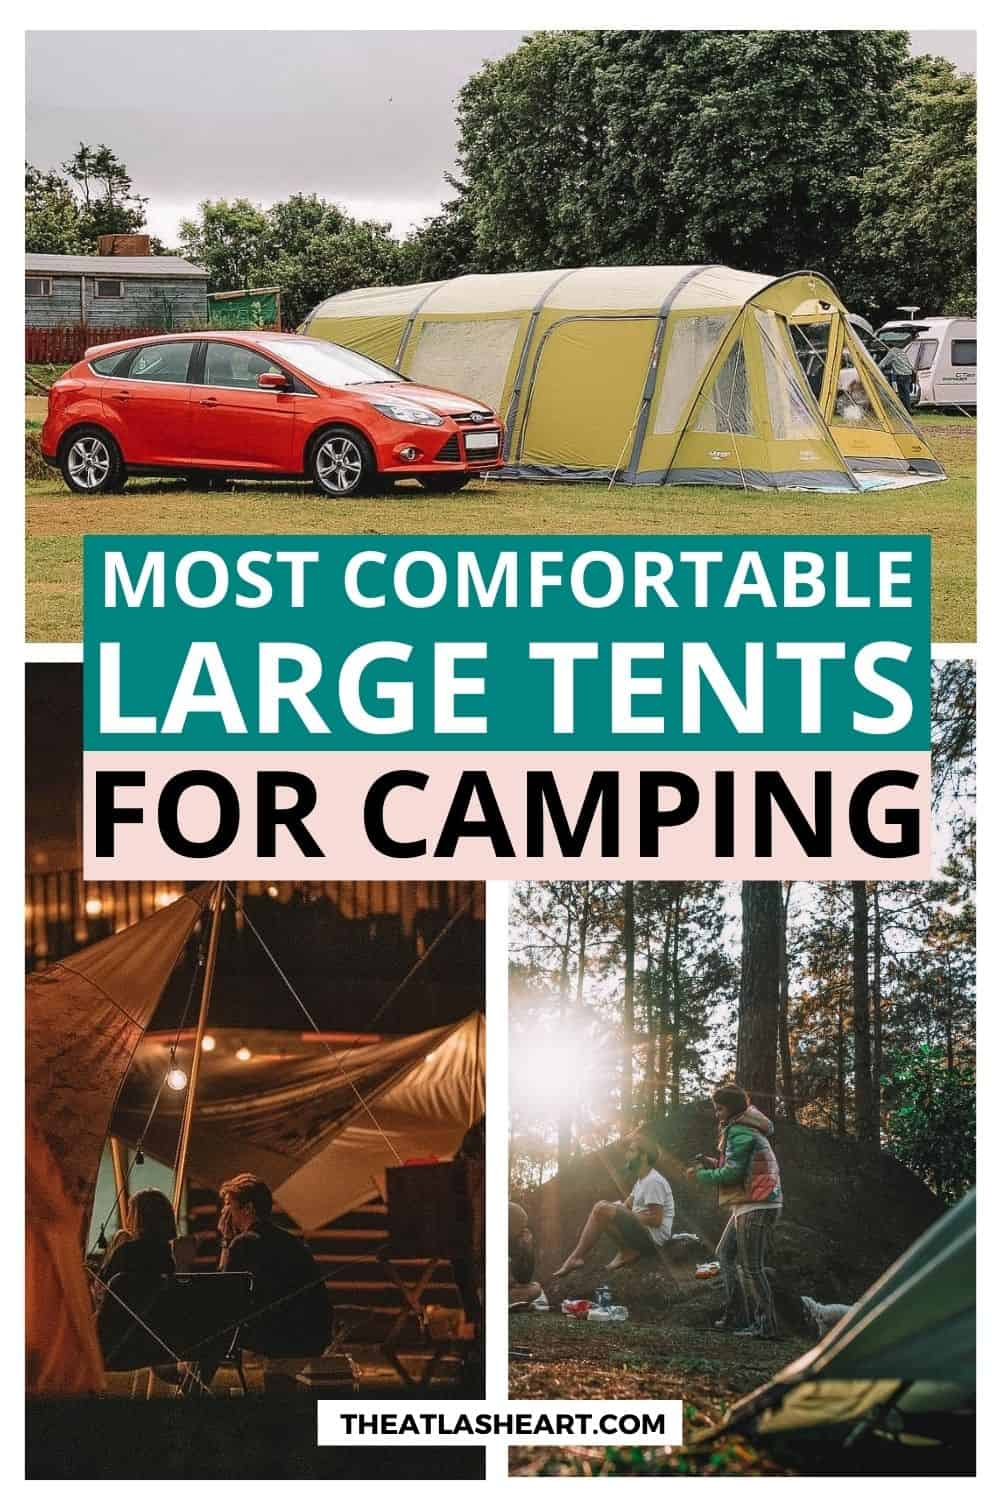 11 Best Large Camping Tents for the Whole Family (2021 Buying Guide)